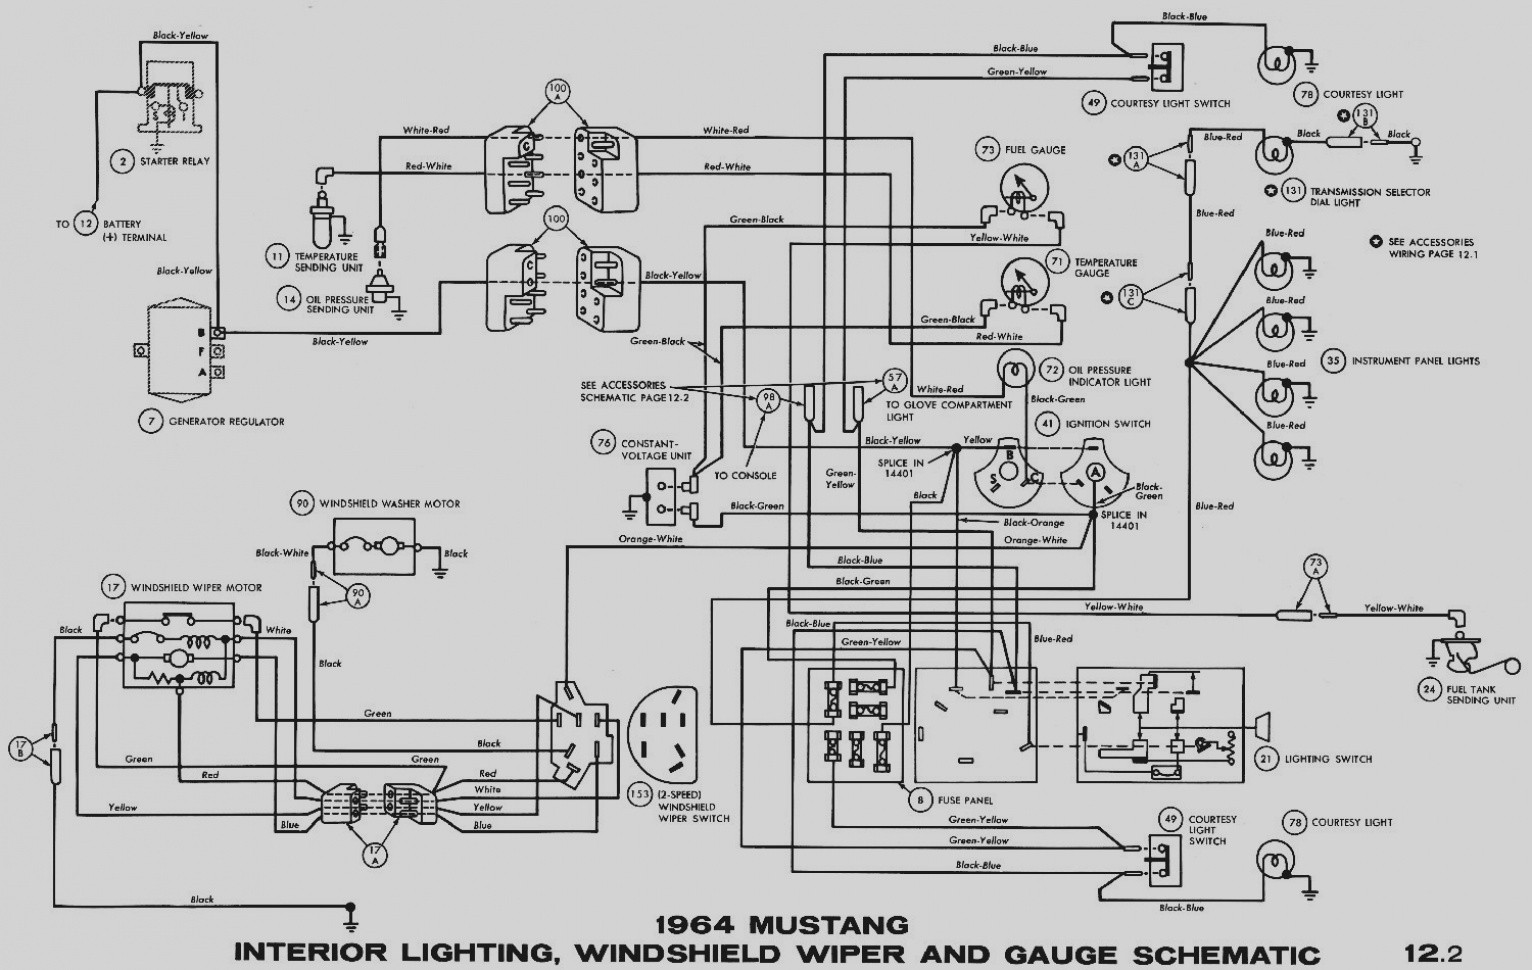 91 c1500 wiring diagram